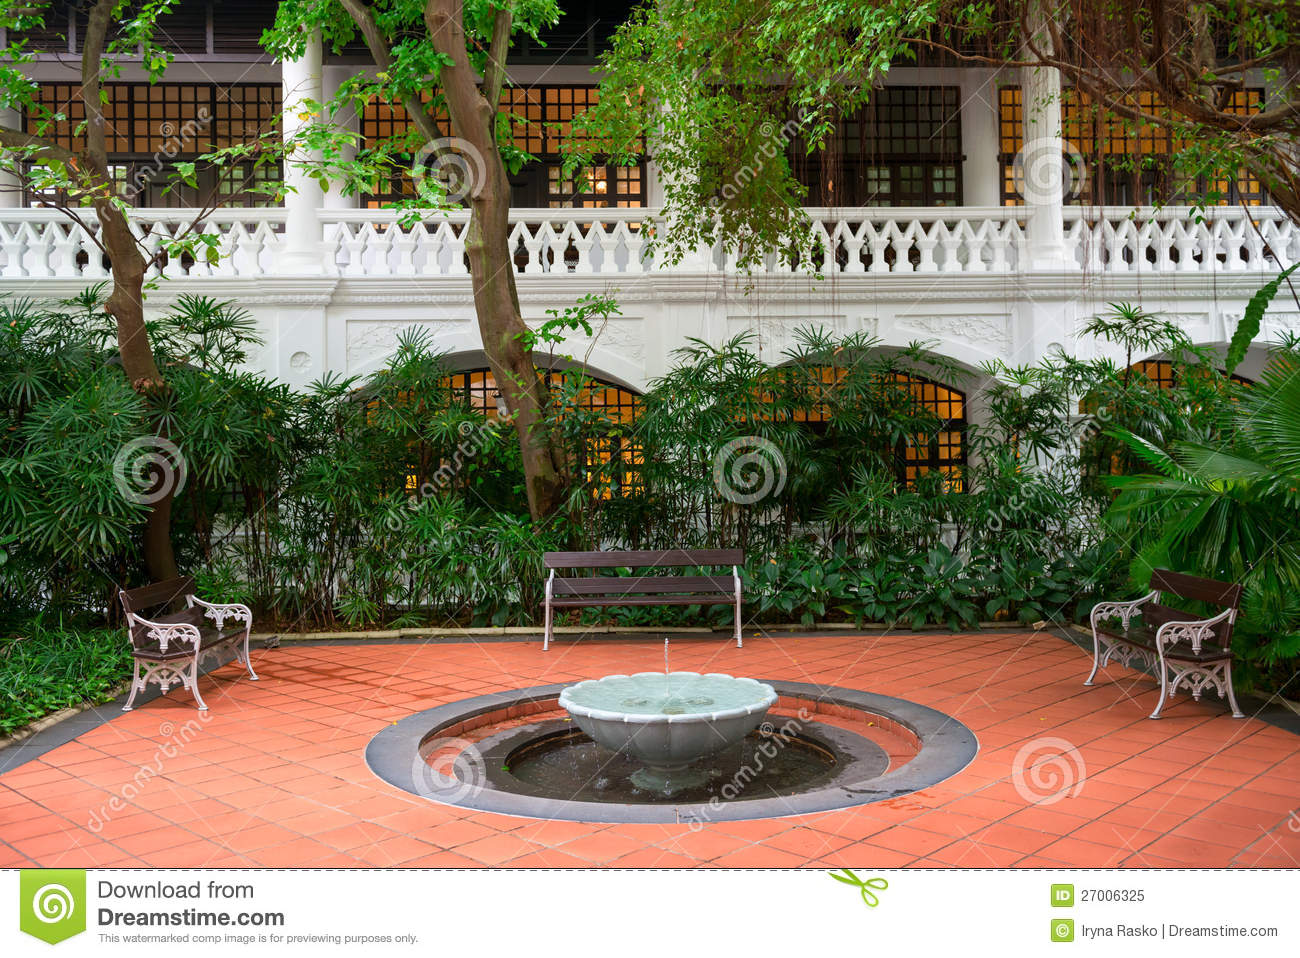 Awe Inspiring Small Fountain In A Garden With Benches Stock Image Image Caraccident5 Cool Chair Designs And Ideas Caraccident5Info